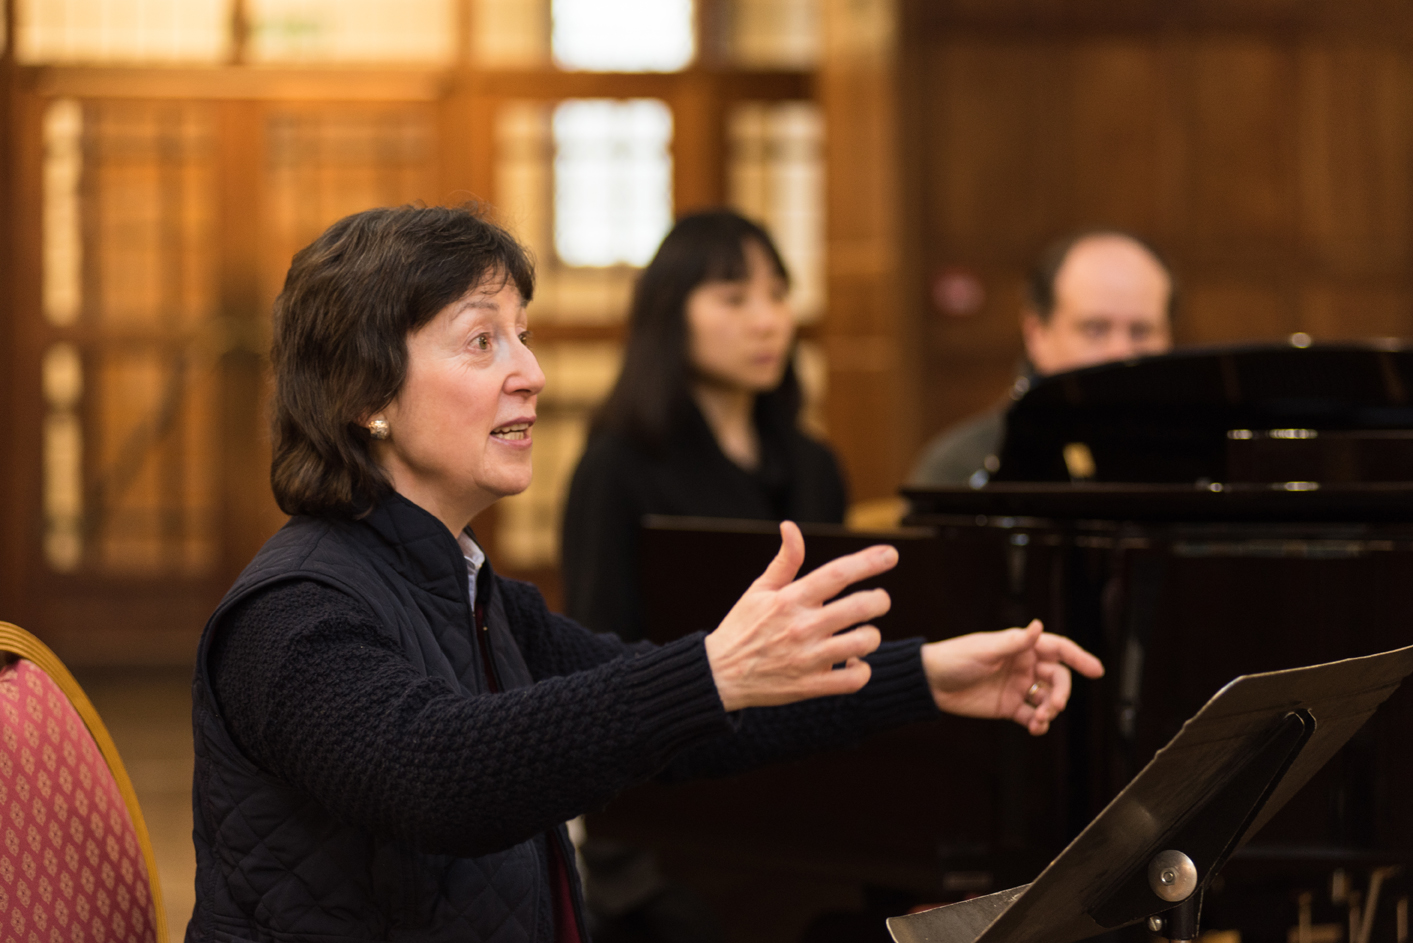 Denise Ham conducting an orchestra